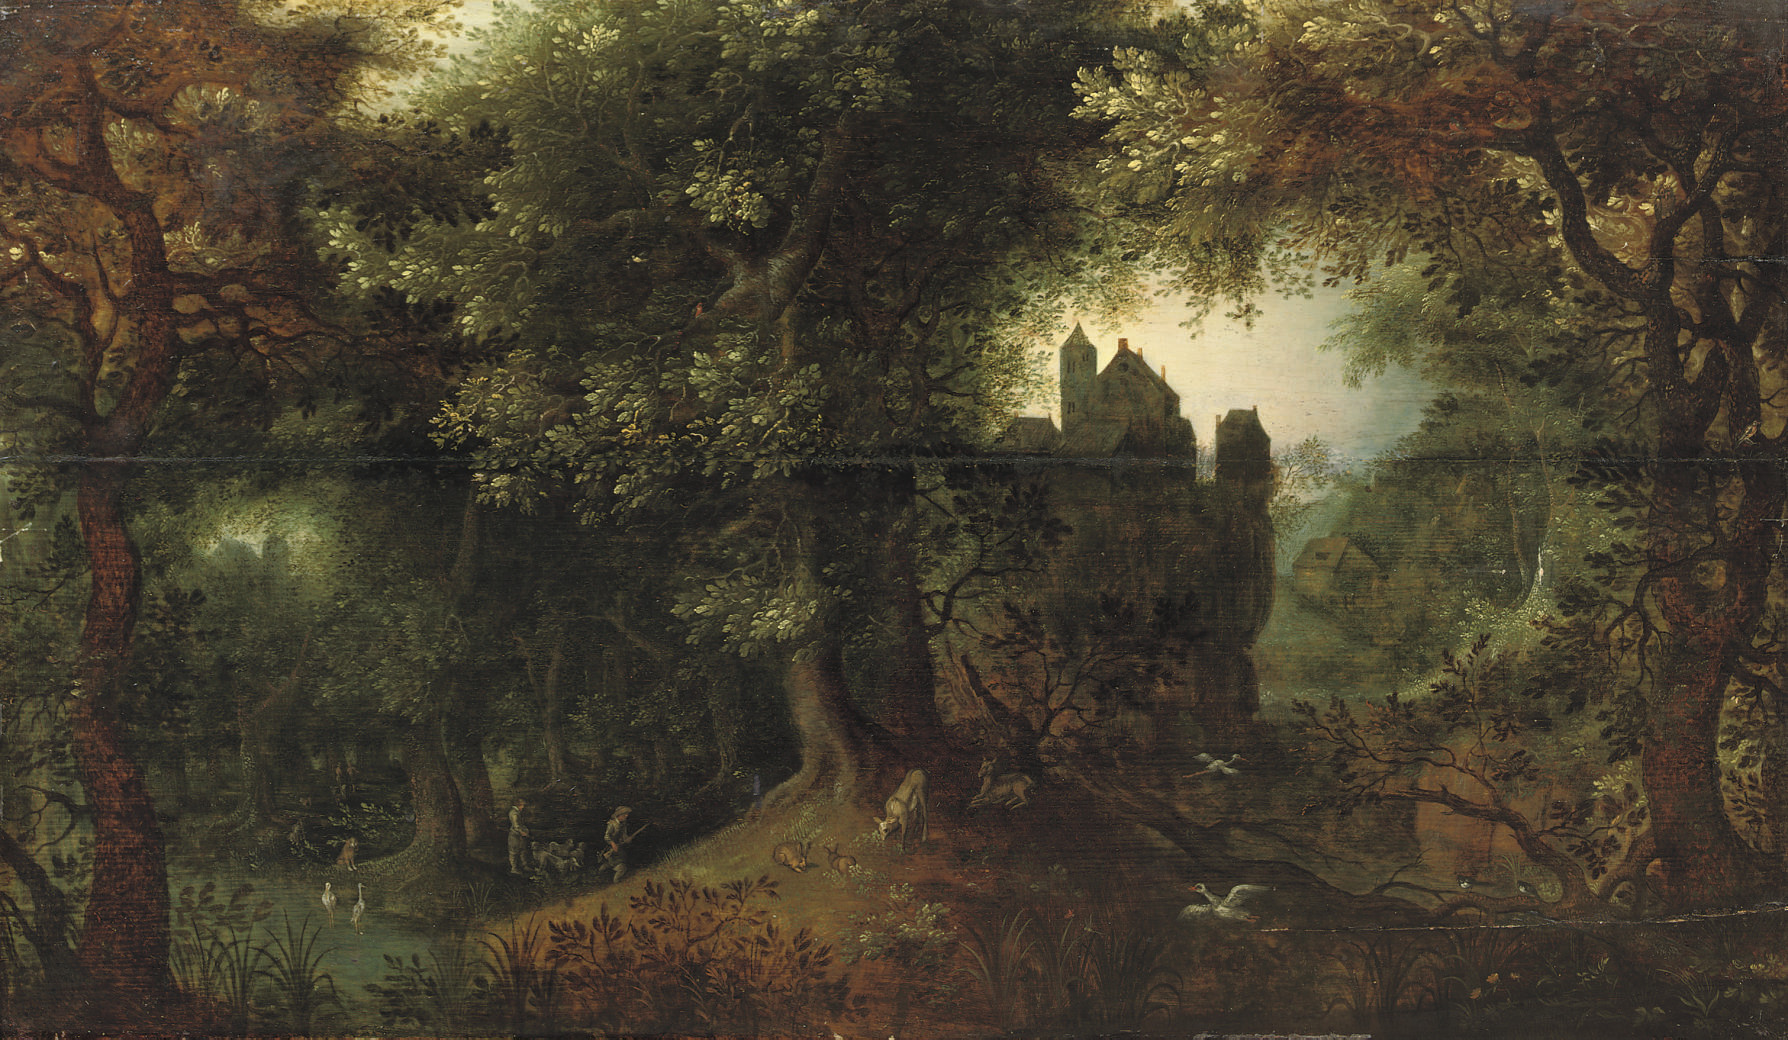 Attributed to Gillis van Conin